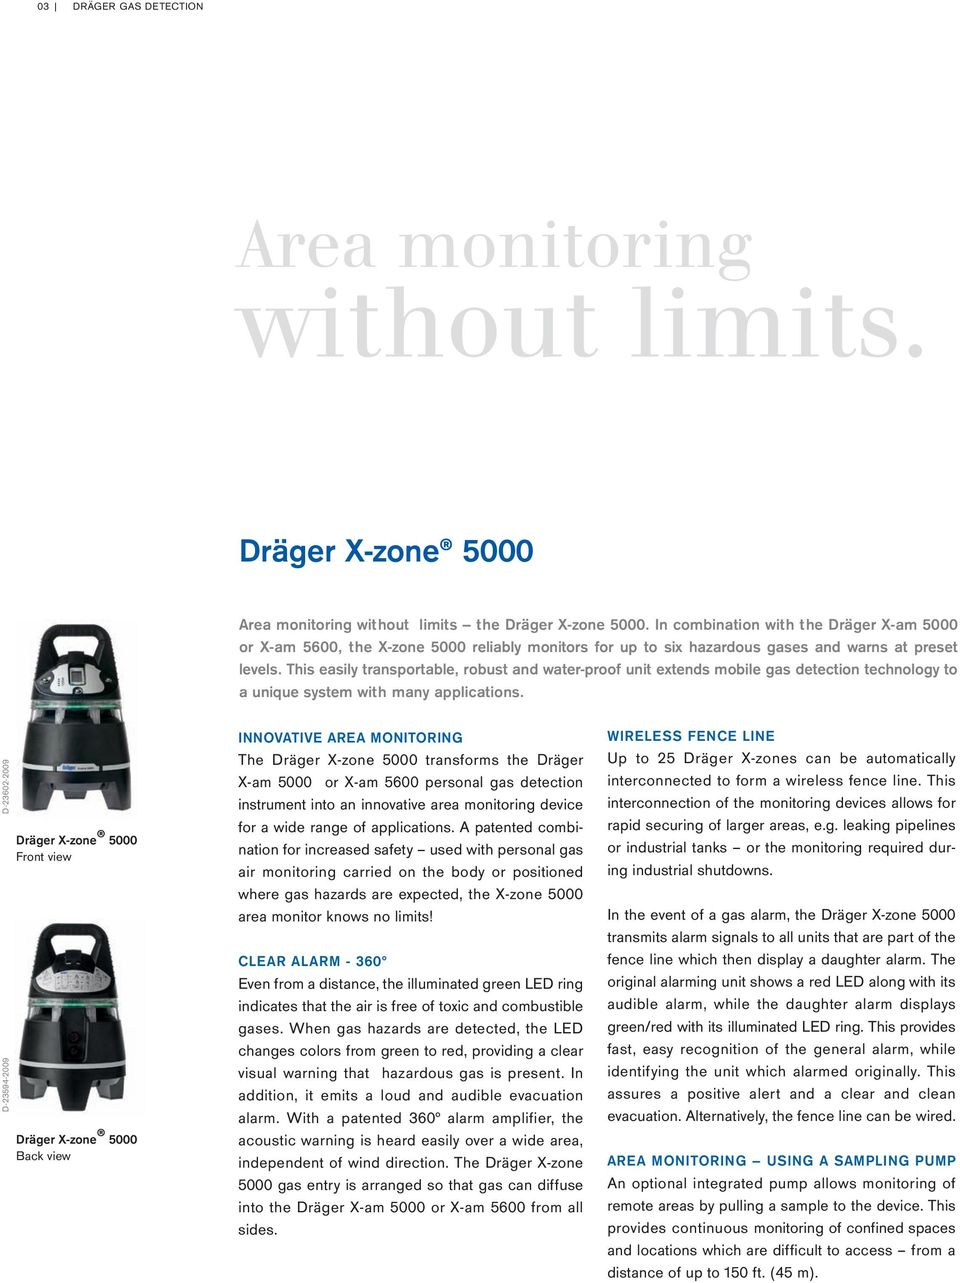 This easily transportable, robust and water-proof unit extends mobile gas detection technology to a unique system with many applications.